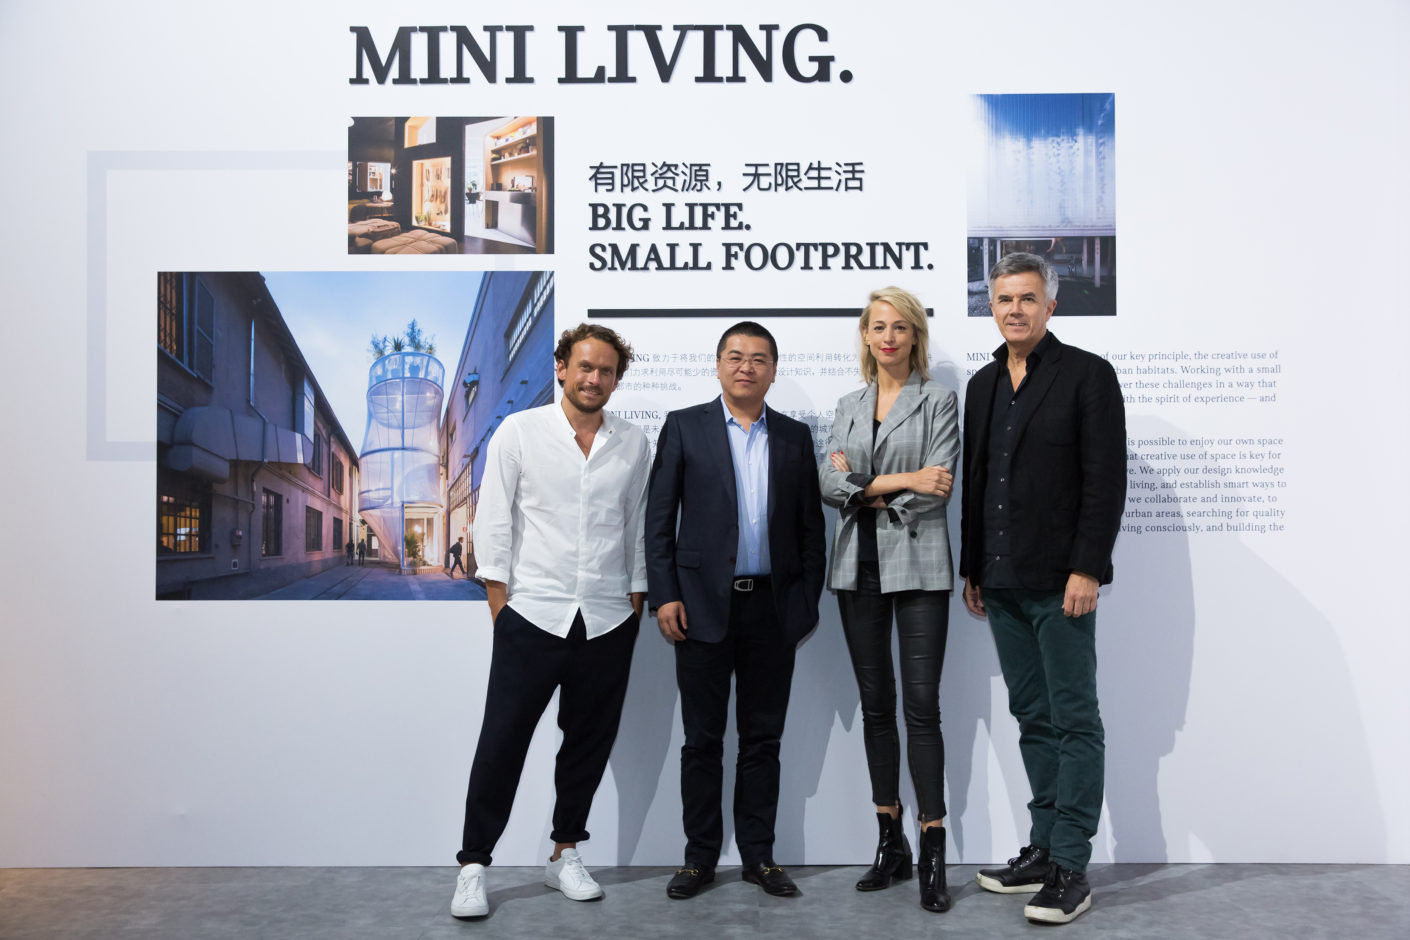 Mini Living Shanghai, Stylepark, Oke Hauser (Creative Lead MINI LIVING), Jerry Shen (Founder of Base, Managing Director und Co-CEO of Nova Property Investment Co. Ltd.), Esther Bahne (Leiterin MINI Brand Strategy and Business Innovation), Peter Schwarzenbauer, Mitglied des Vorstands der BMW AG, MINI, Rolls-Royce, BMW Motorrad, Kundenerlebnis und Digital Business Innovation BMW Group